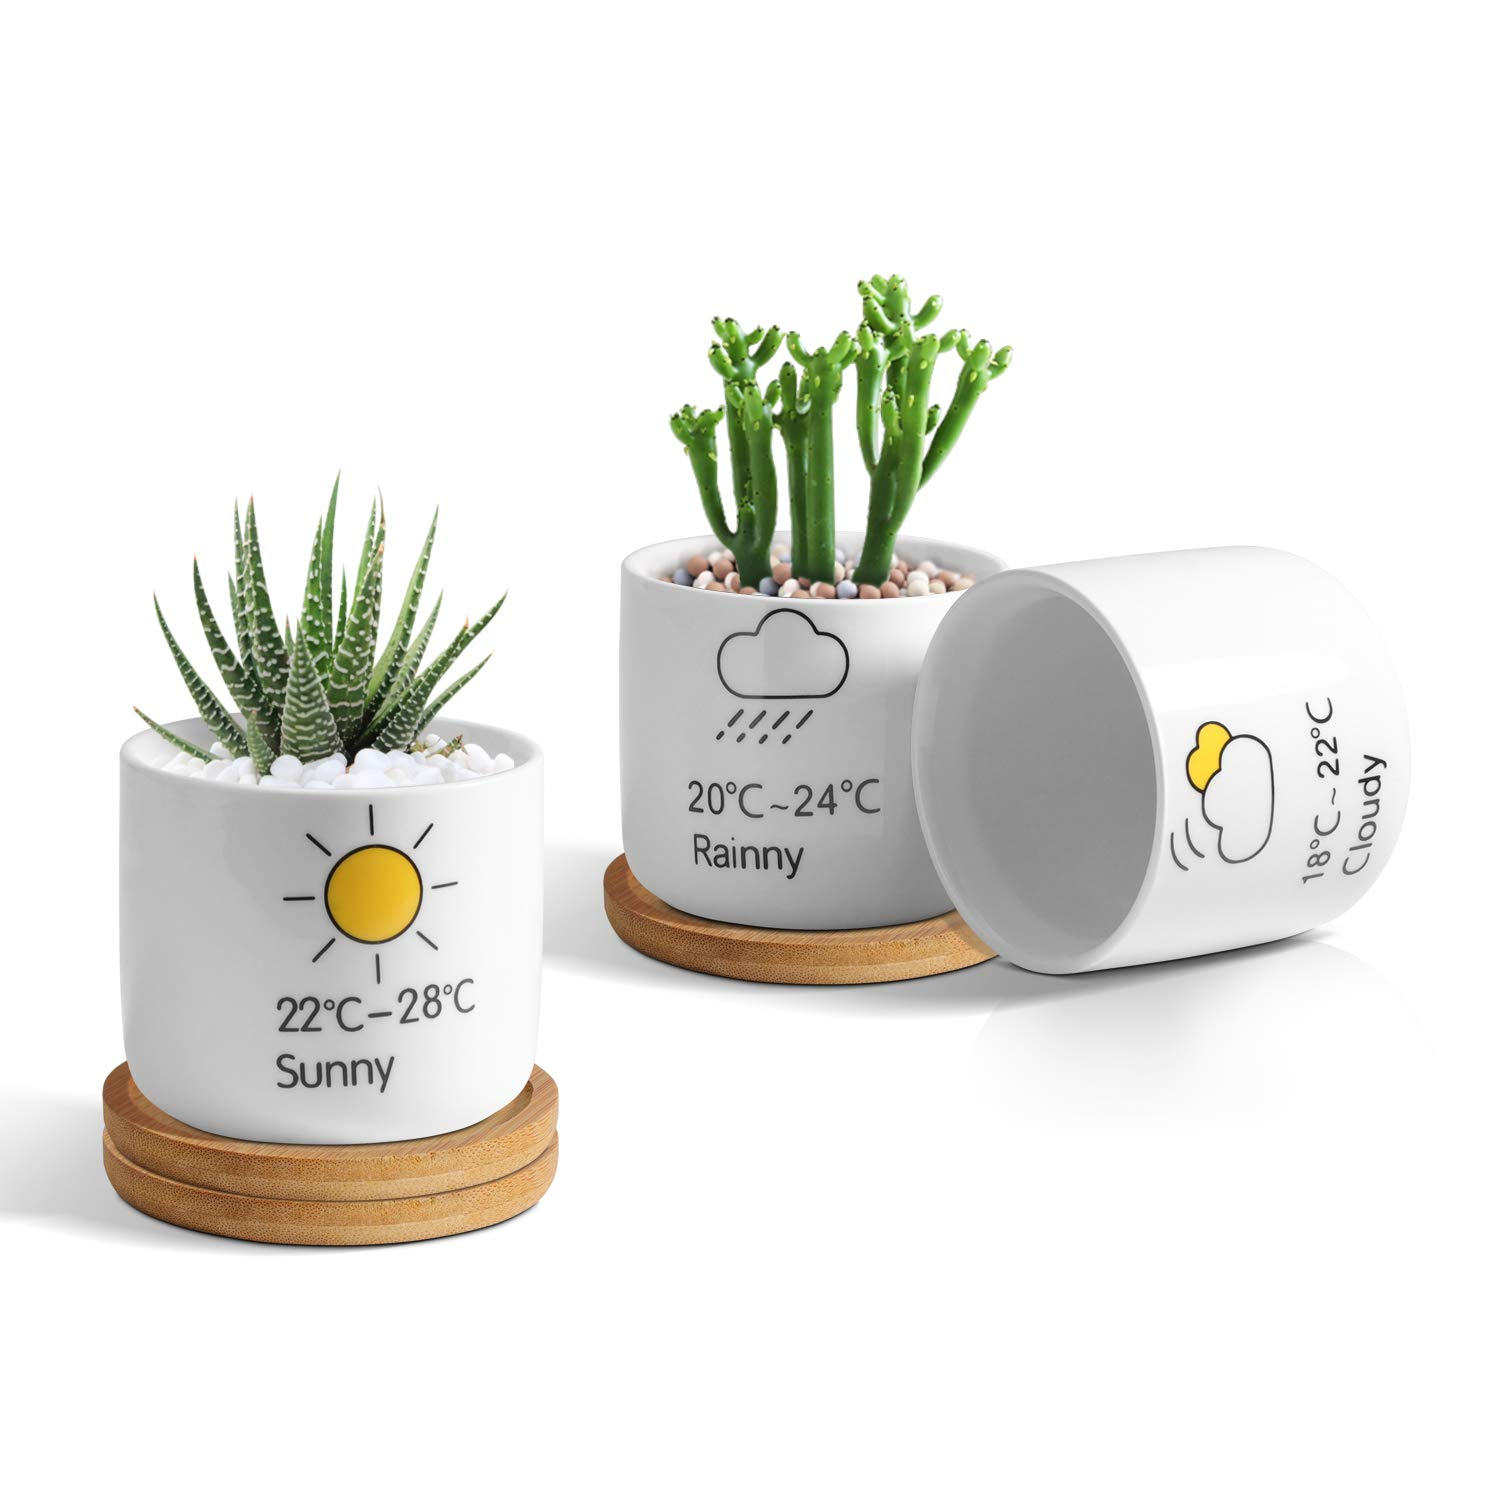 T4U Ceramic Succulent Pot Cartoon Patterns White Round Mini with Tray, Set of 3